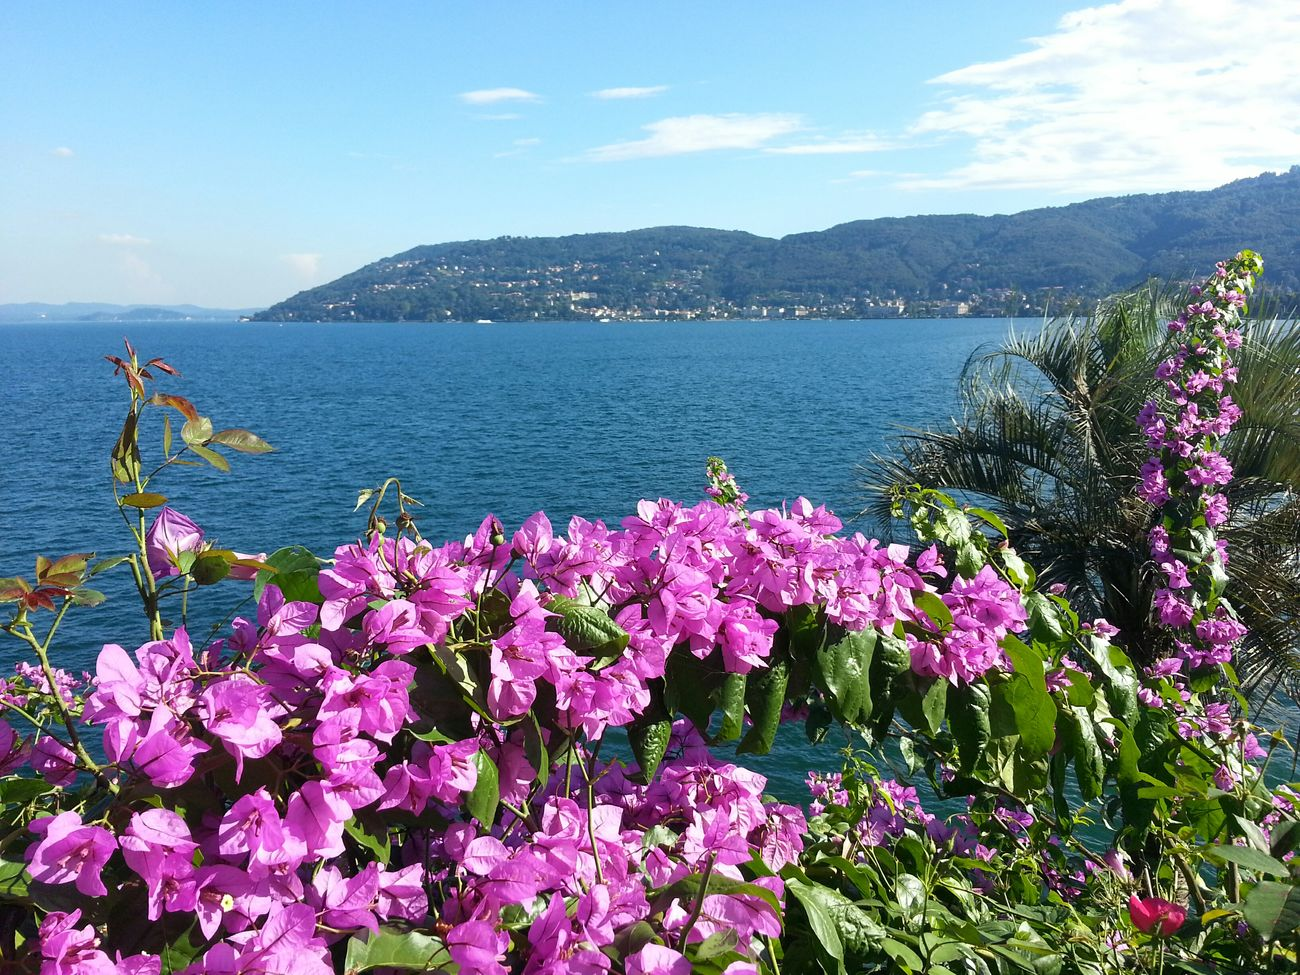 Fleurs Flowers Paysage View Borromeo italy Italie Lac Majeur Major Lac Italie